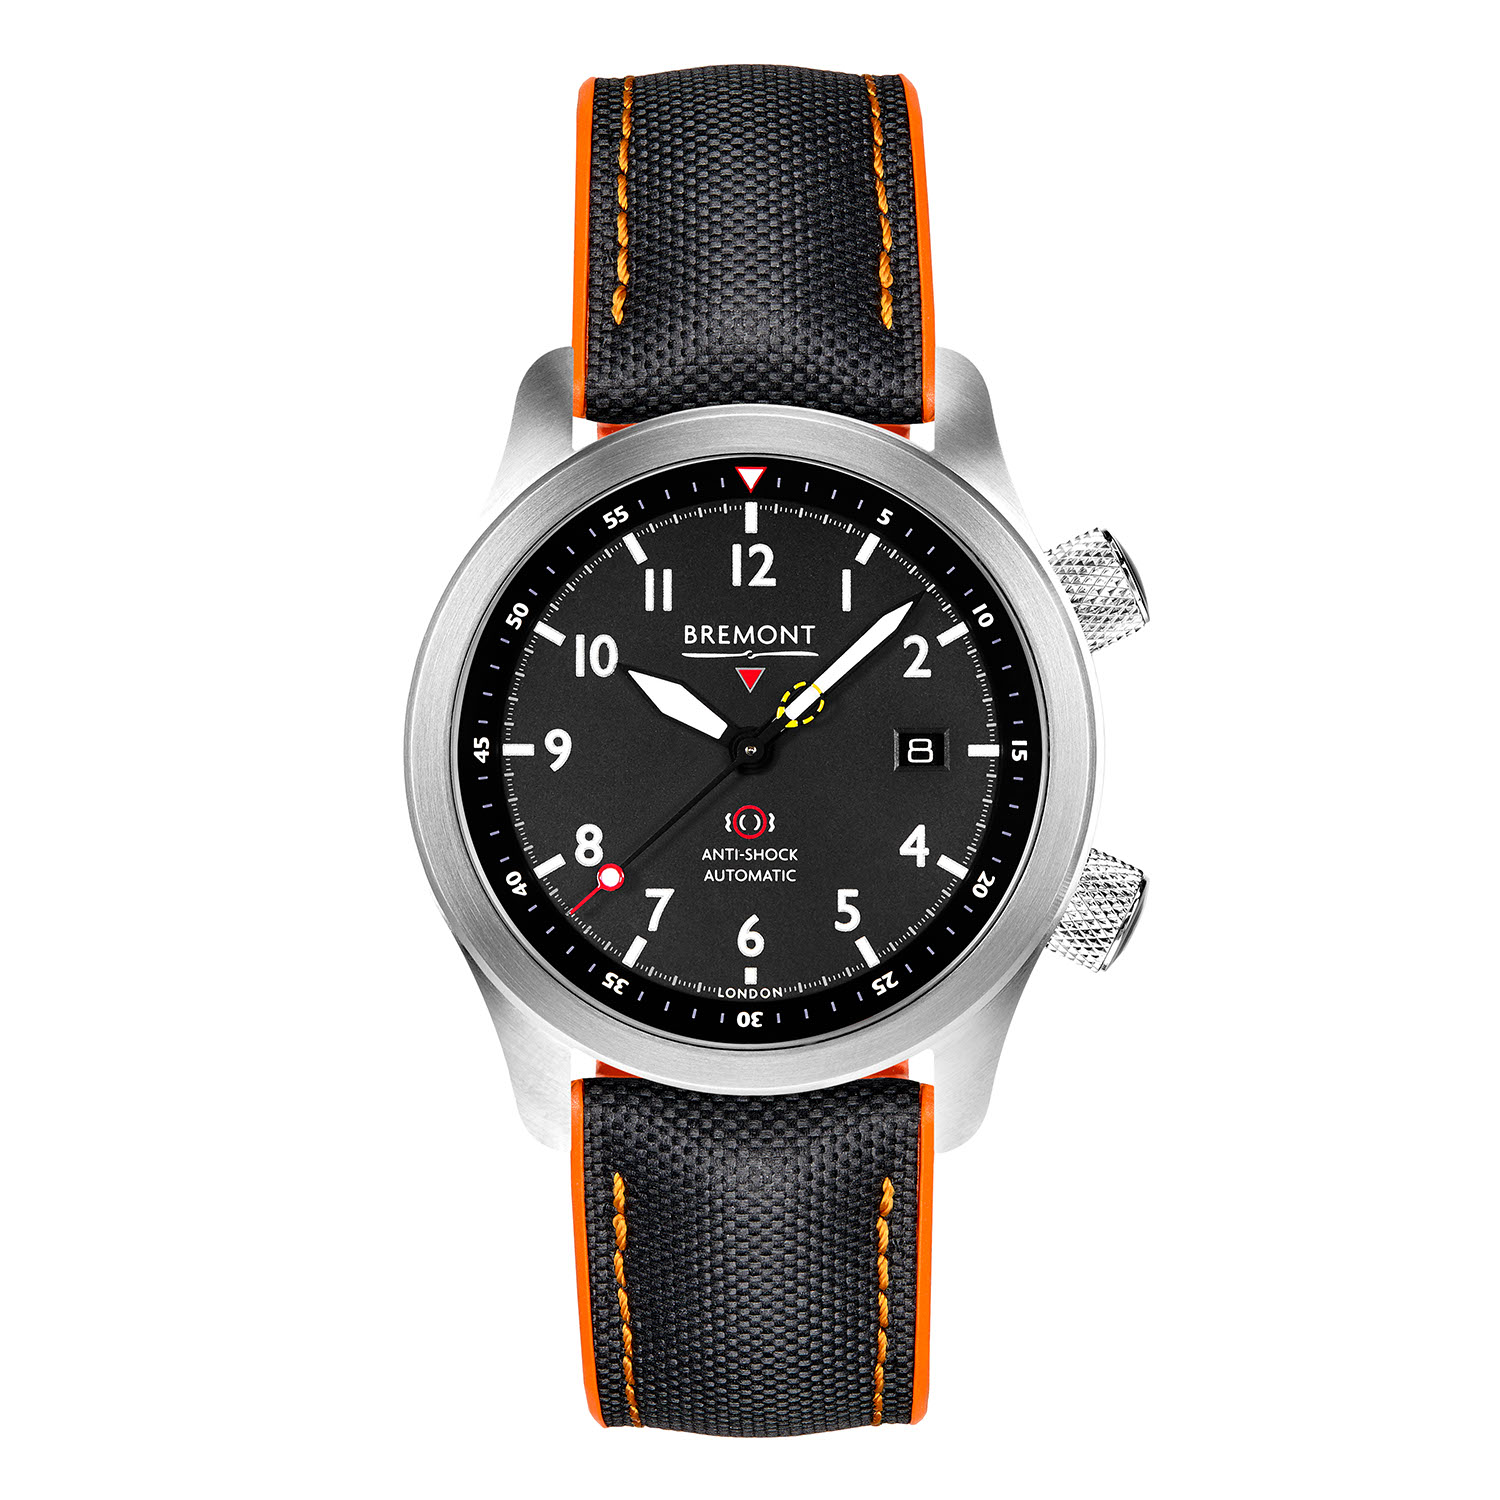 Bremont's updated 2020 MBII in the black dial variation